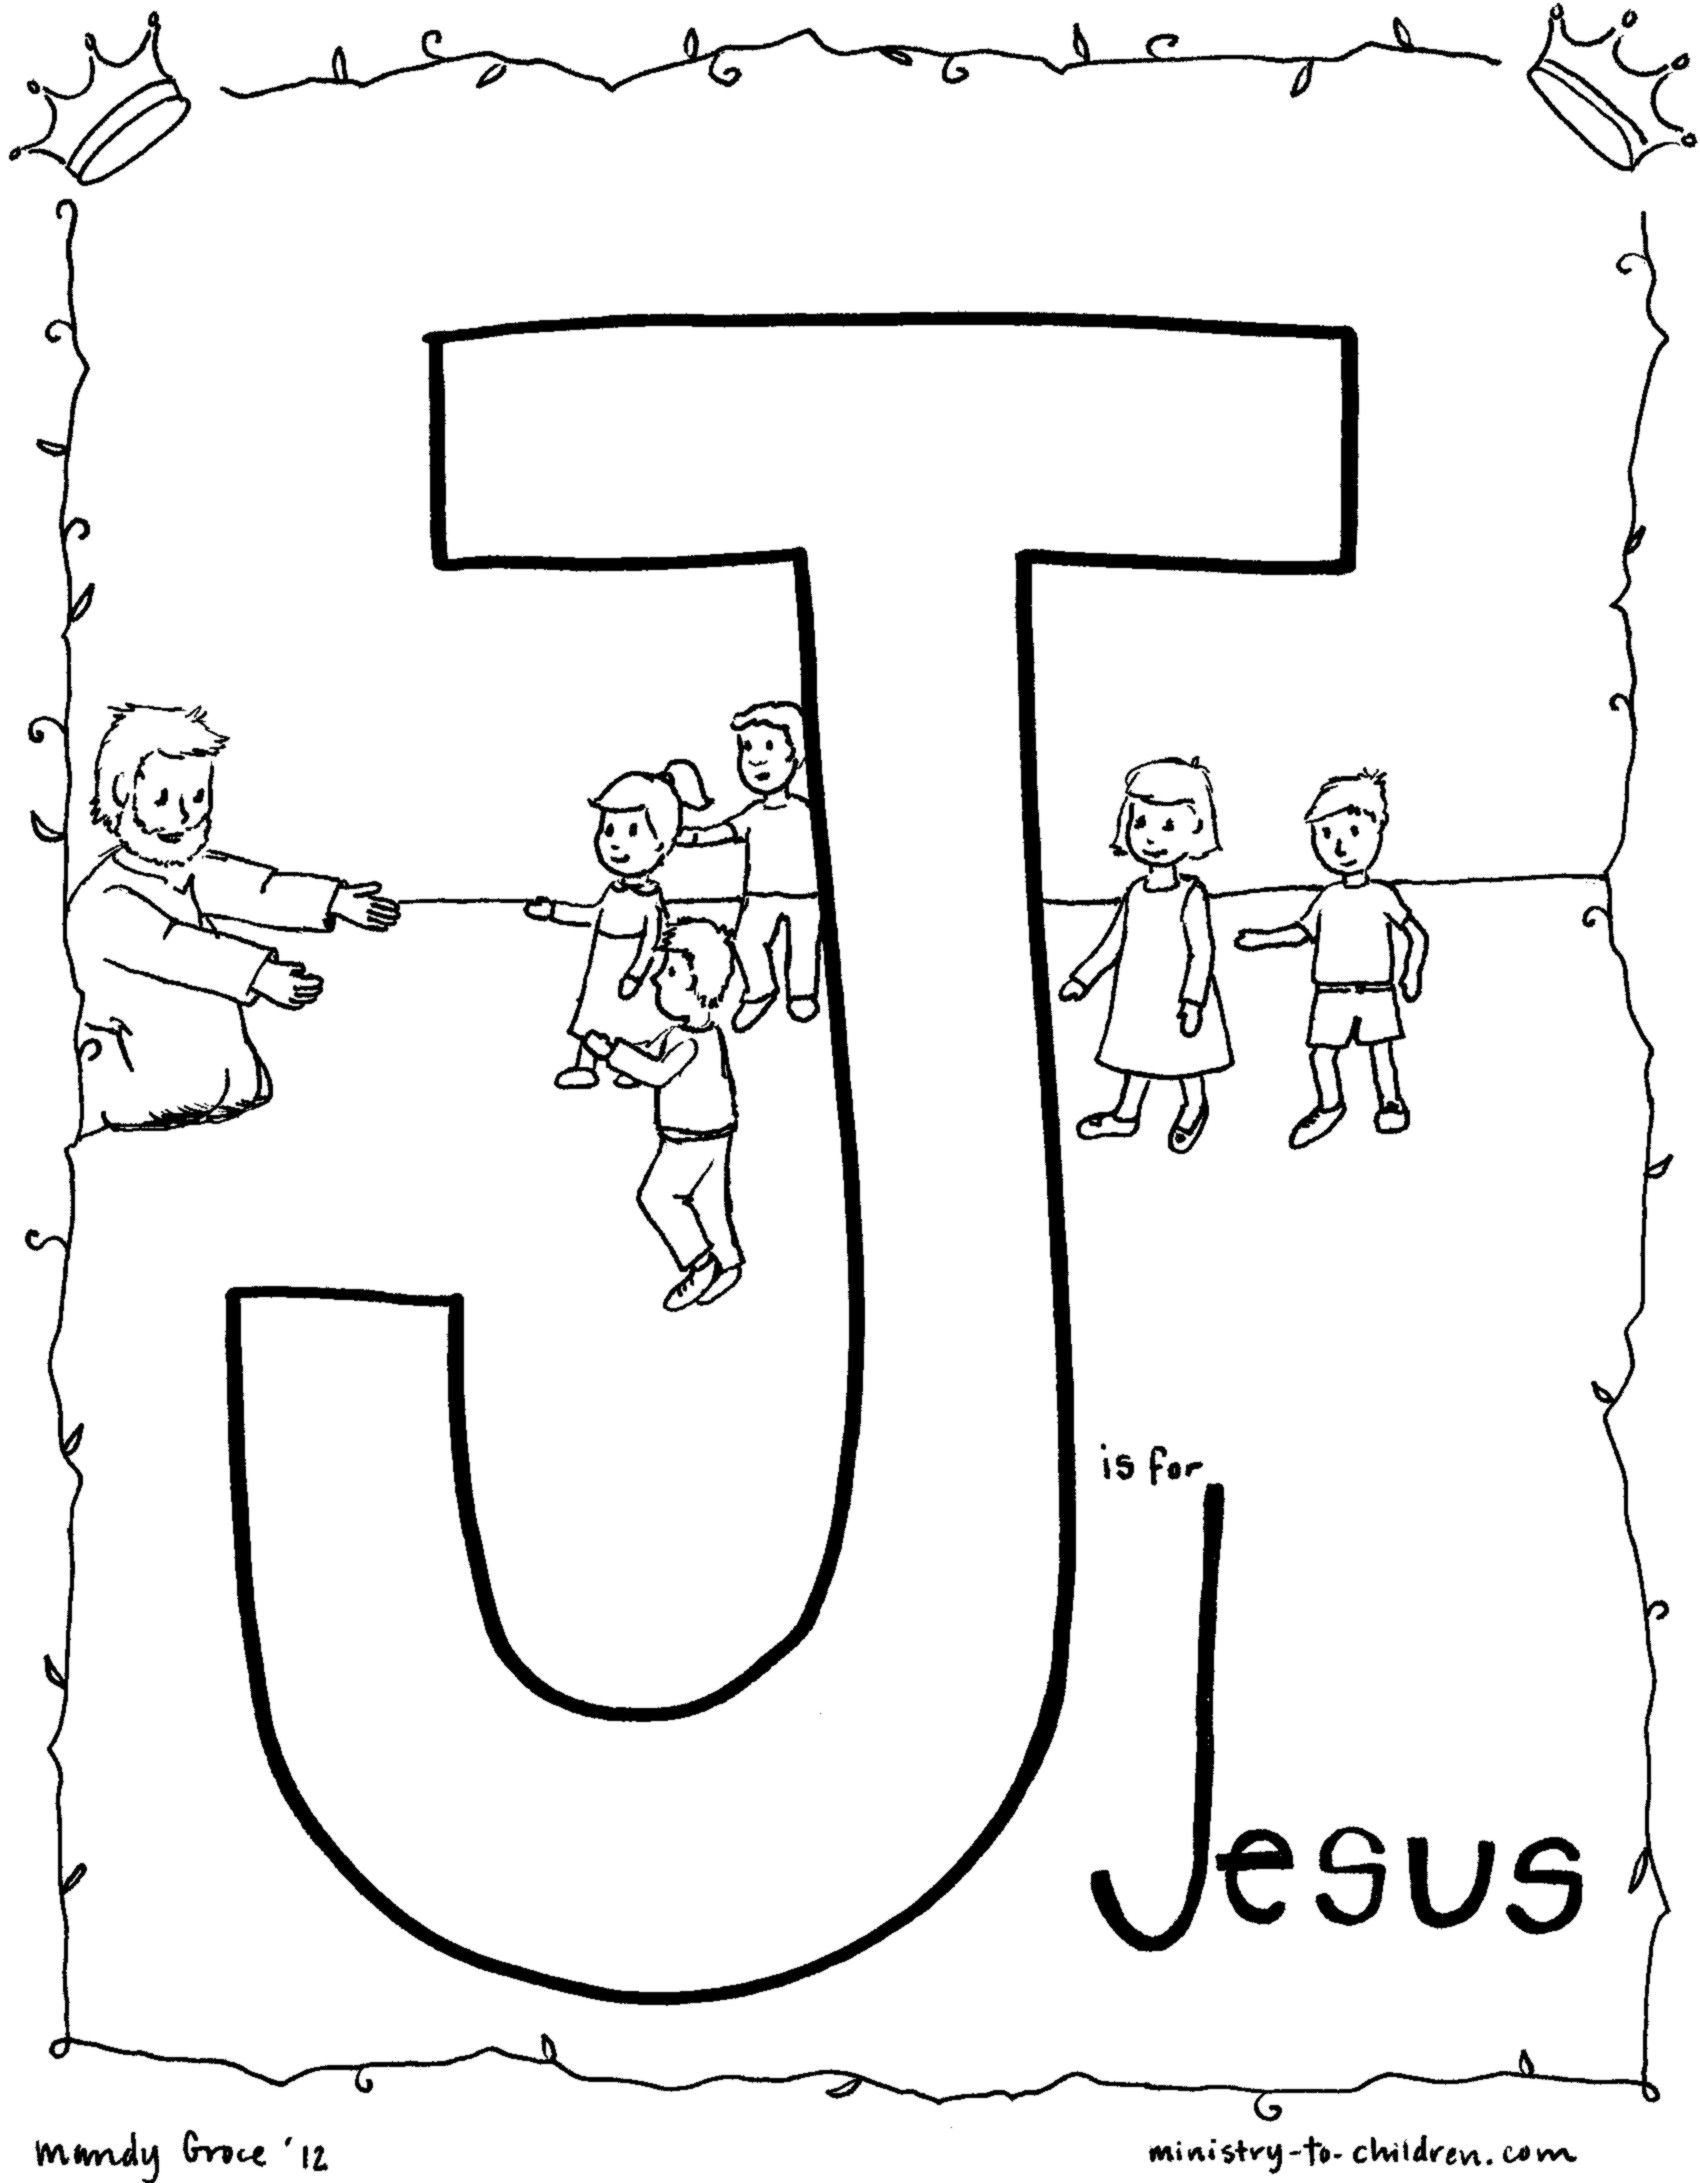 Bible Alphabet coloring Pages http://ministry-to-children